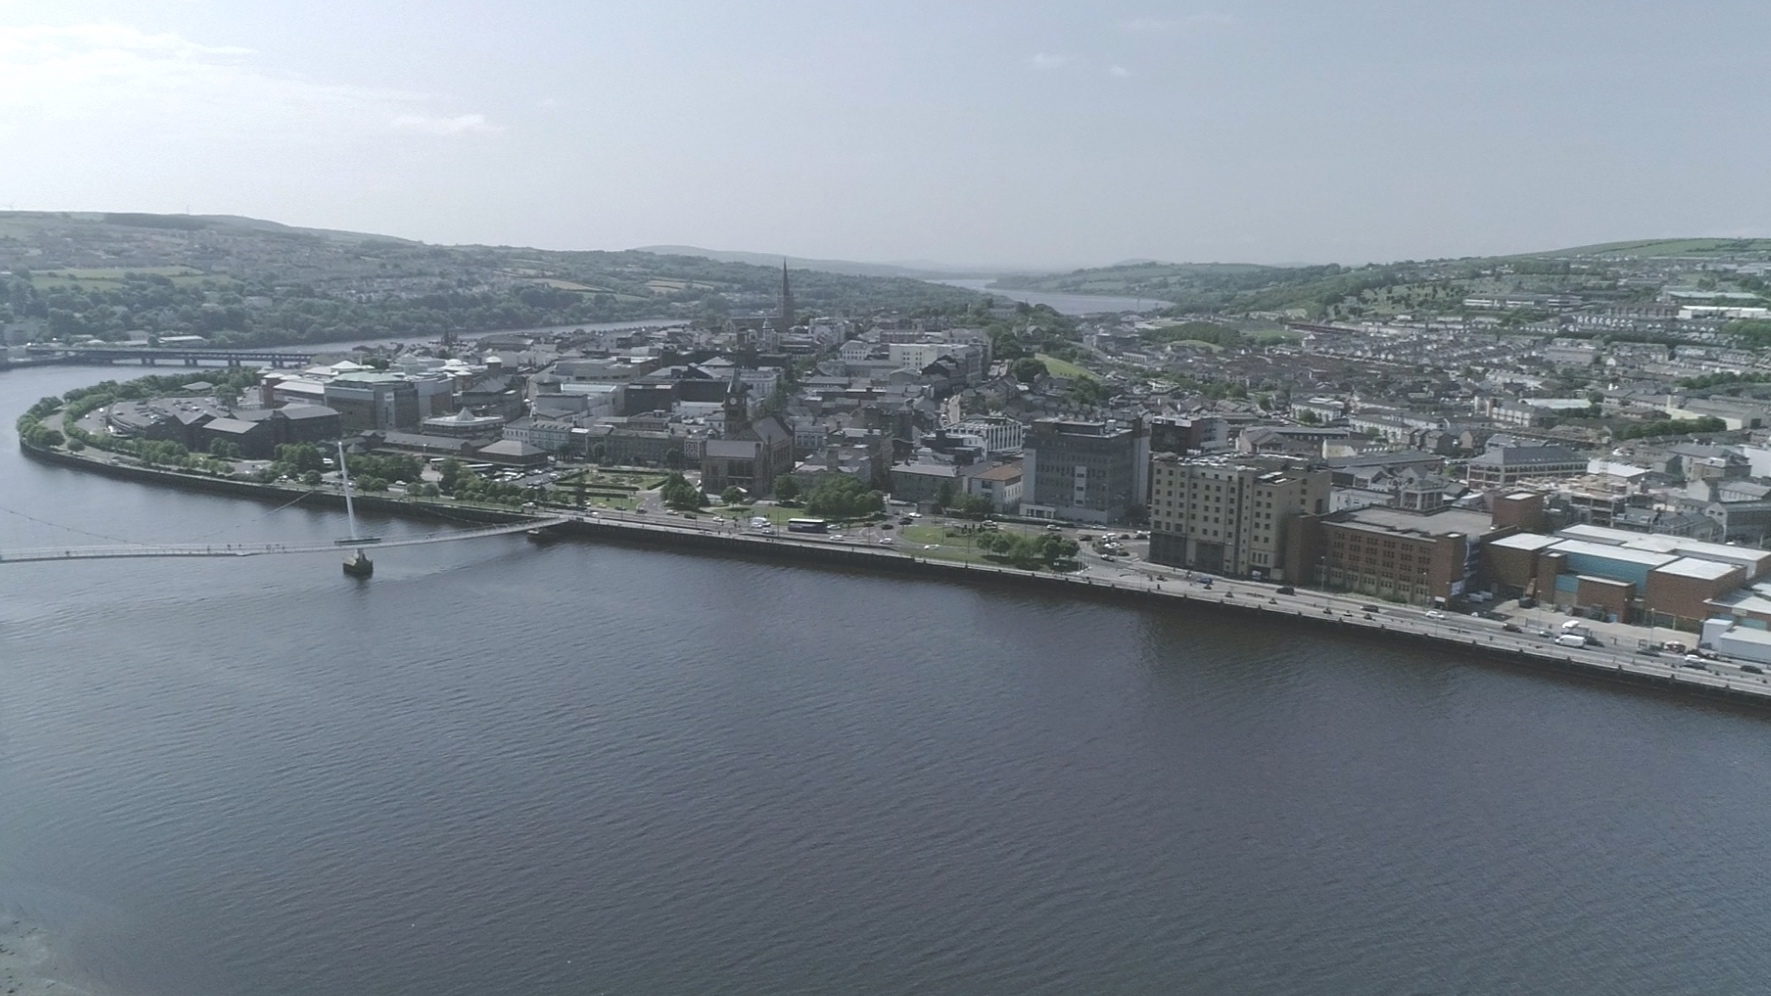 Derry City and Peace Bridge